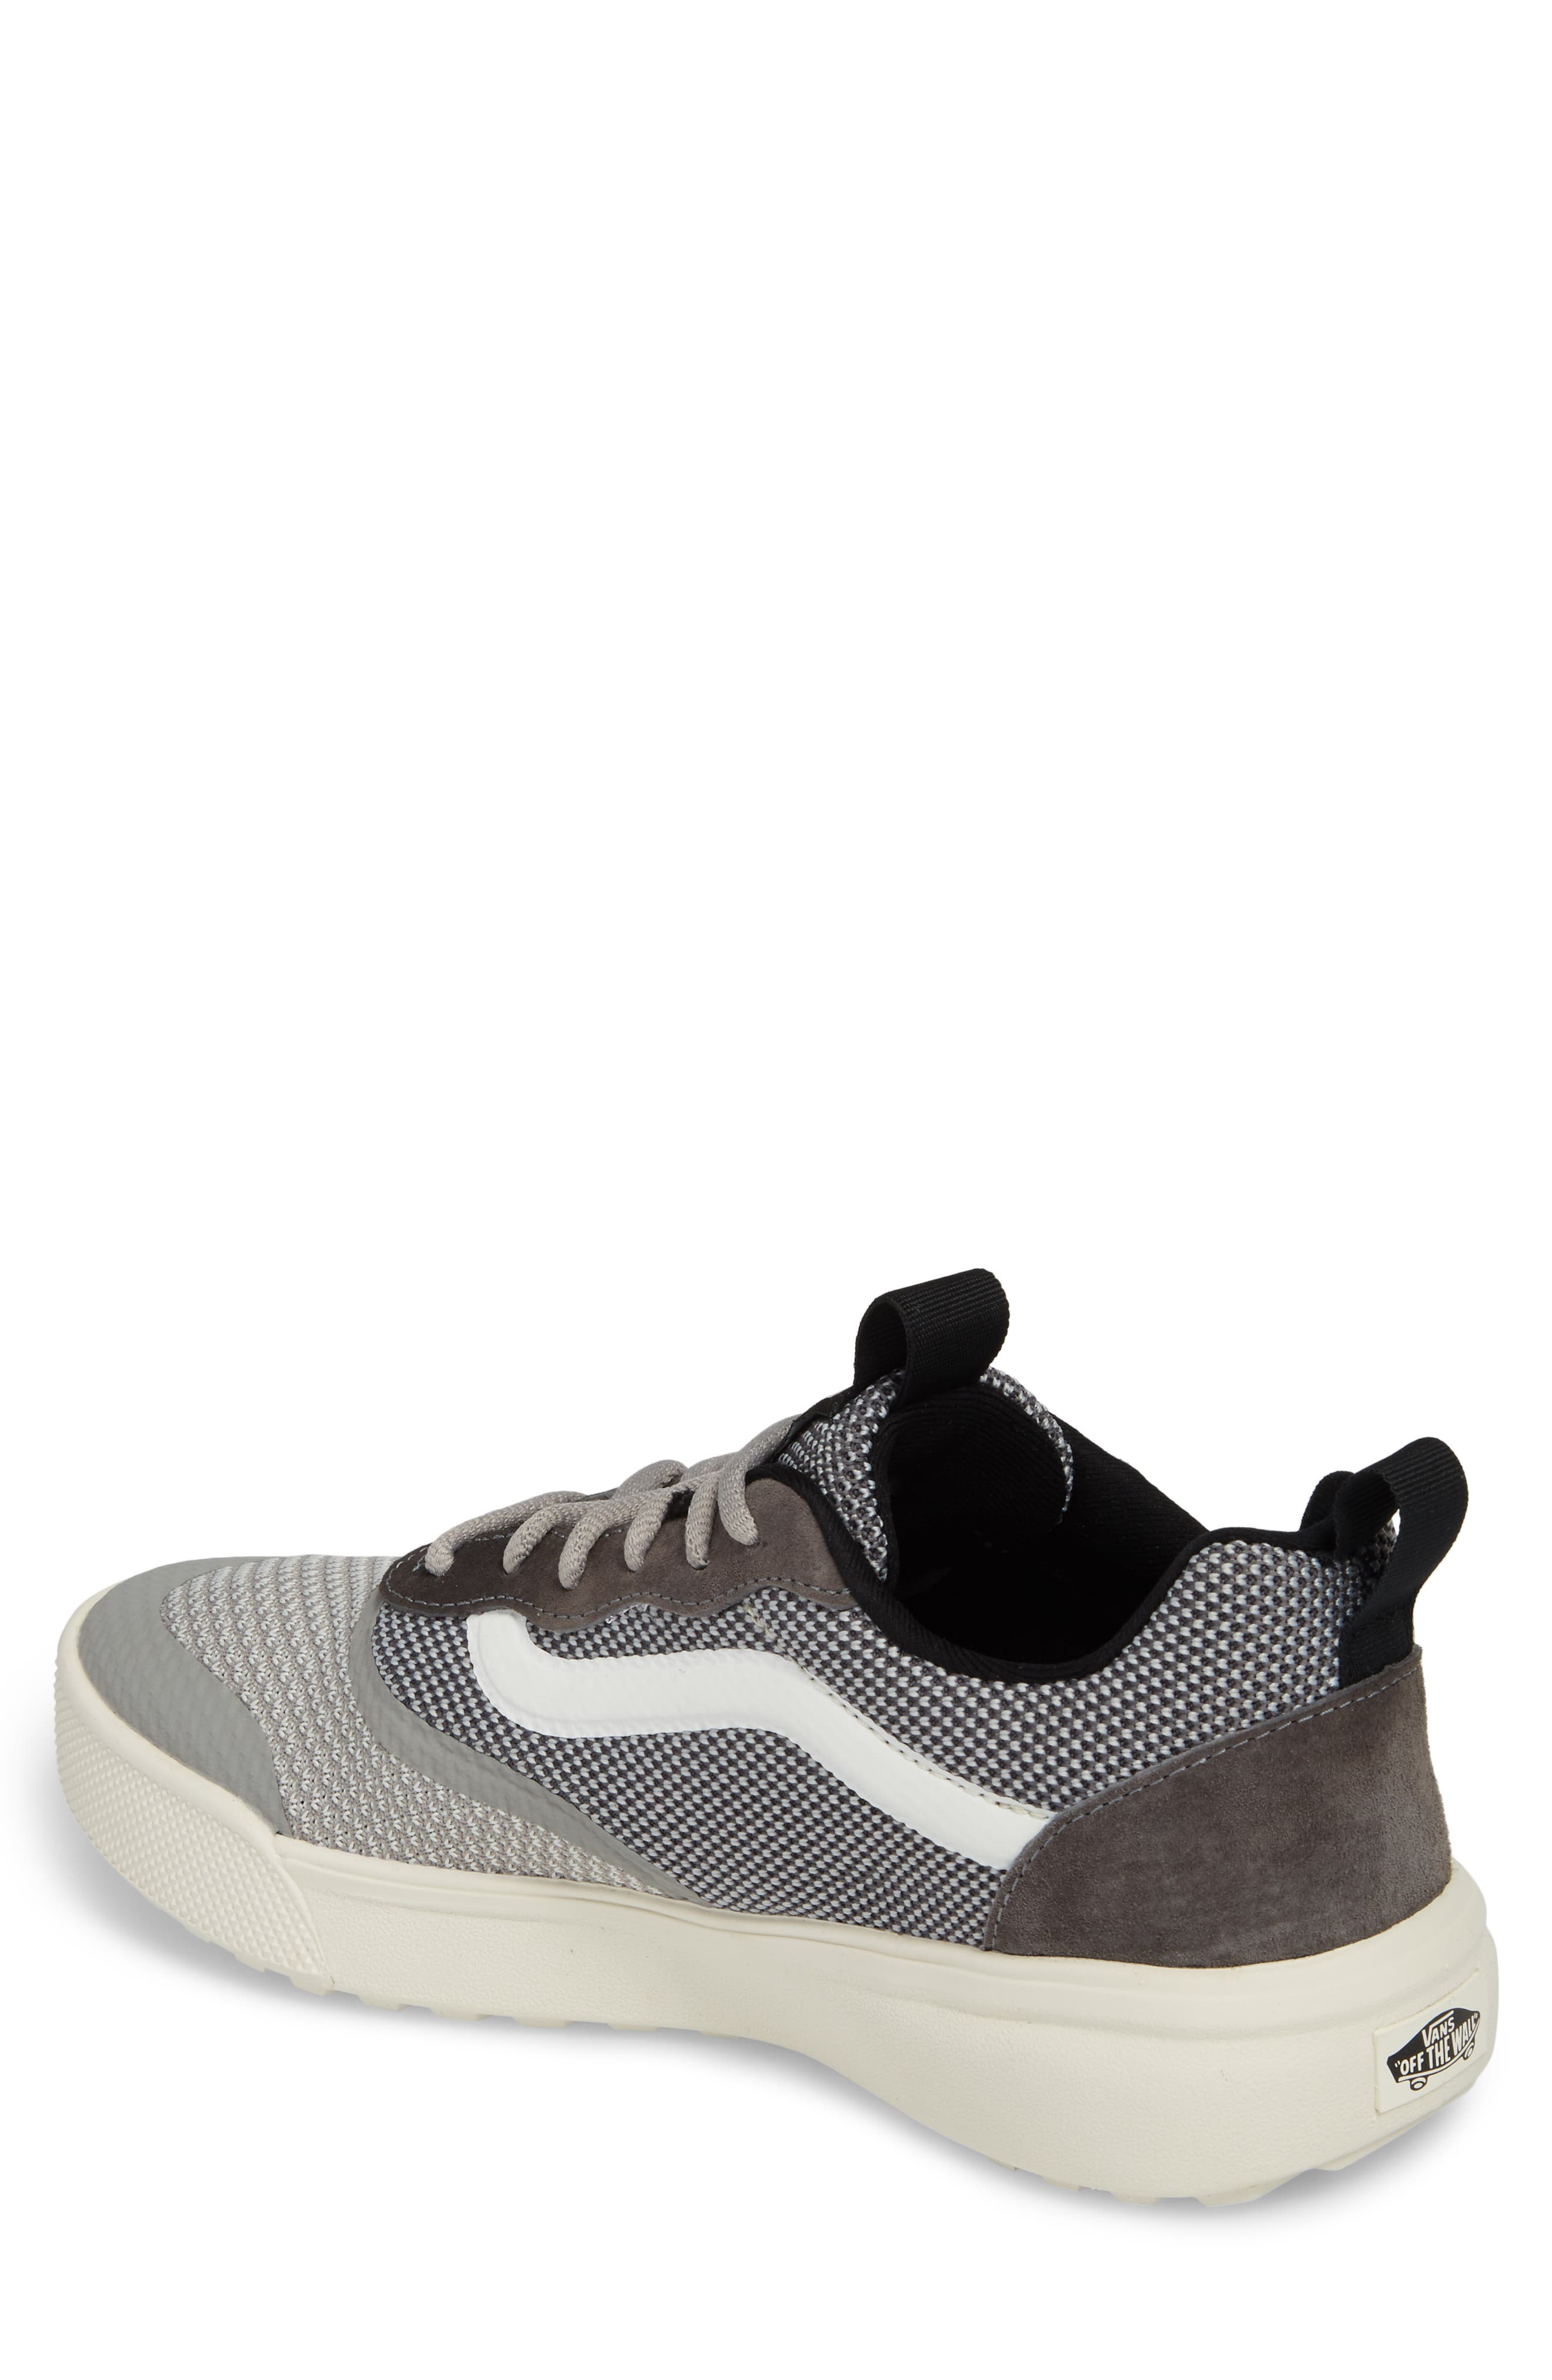 UltraRange DX Low Top Sneaker,                             Alternate thumbnail 2, color,                             Pewter/ Drizzle